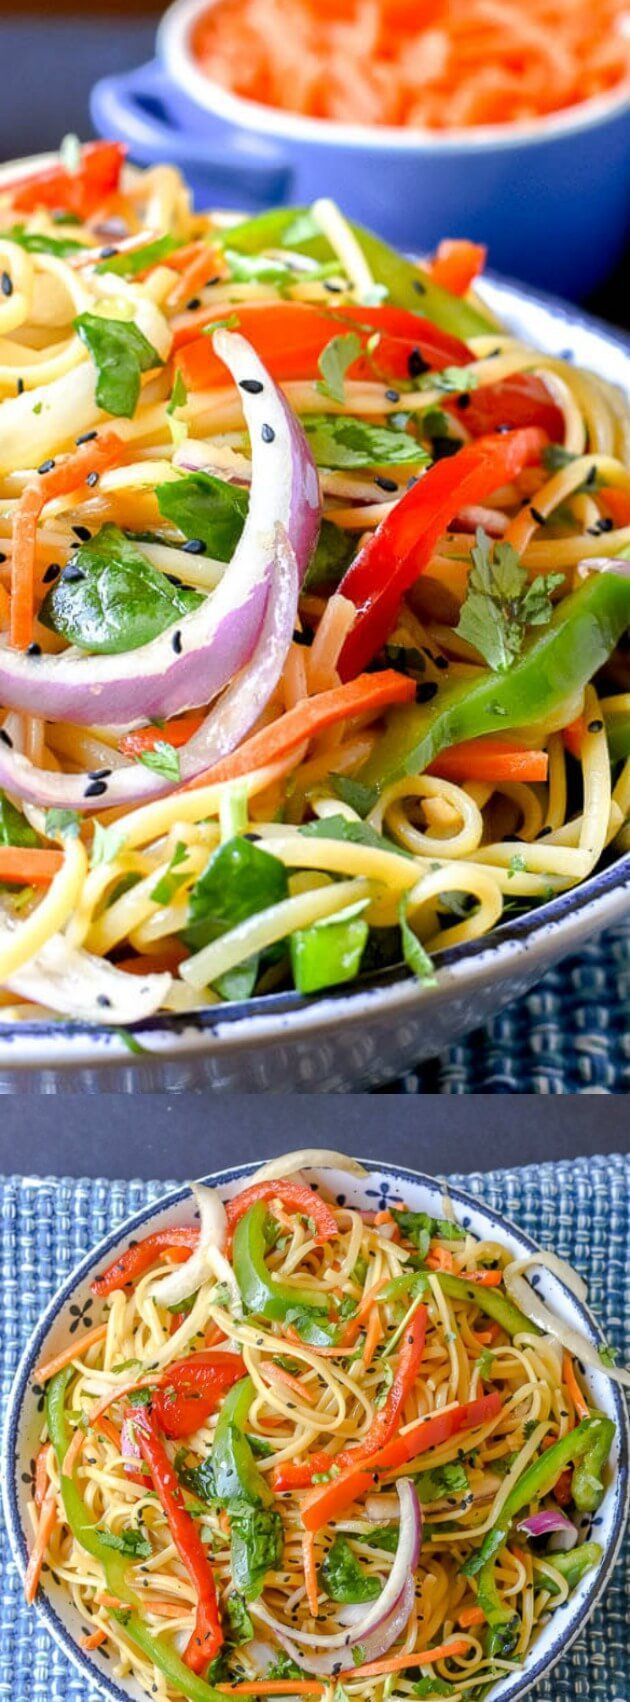 Thus Thai Noodle Salad from Flavor Mosaic is full of flavor and has just enough kick to get your attention! It's a colorful dish packed with fresh veggies, a tasty marinade, and a sprinkling of black sesame seeds!